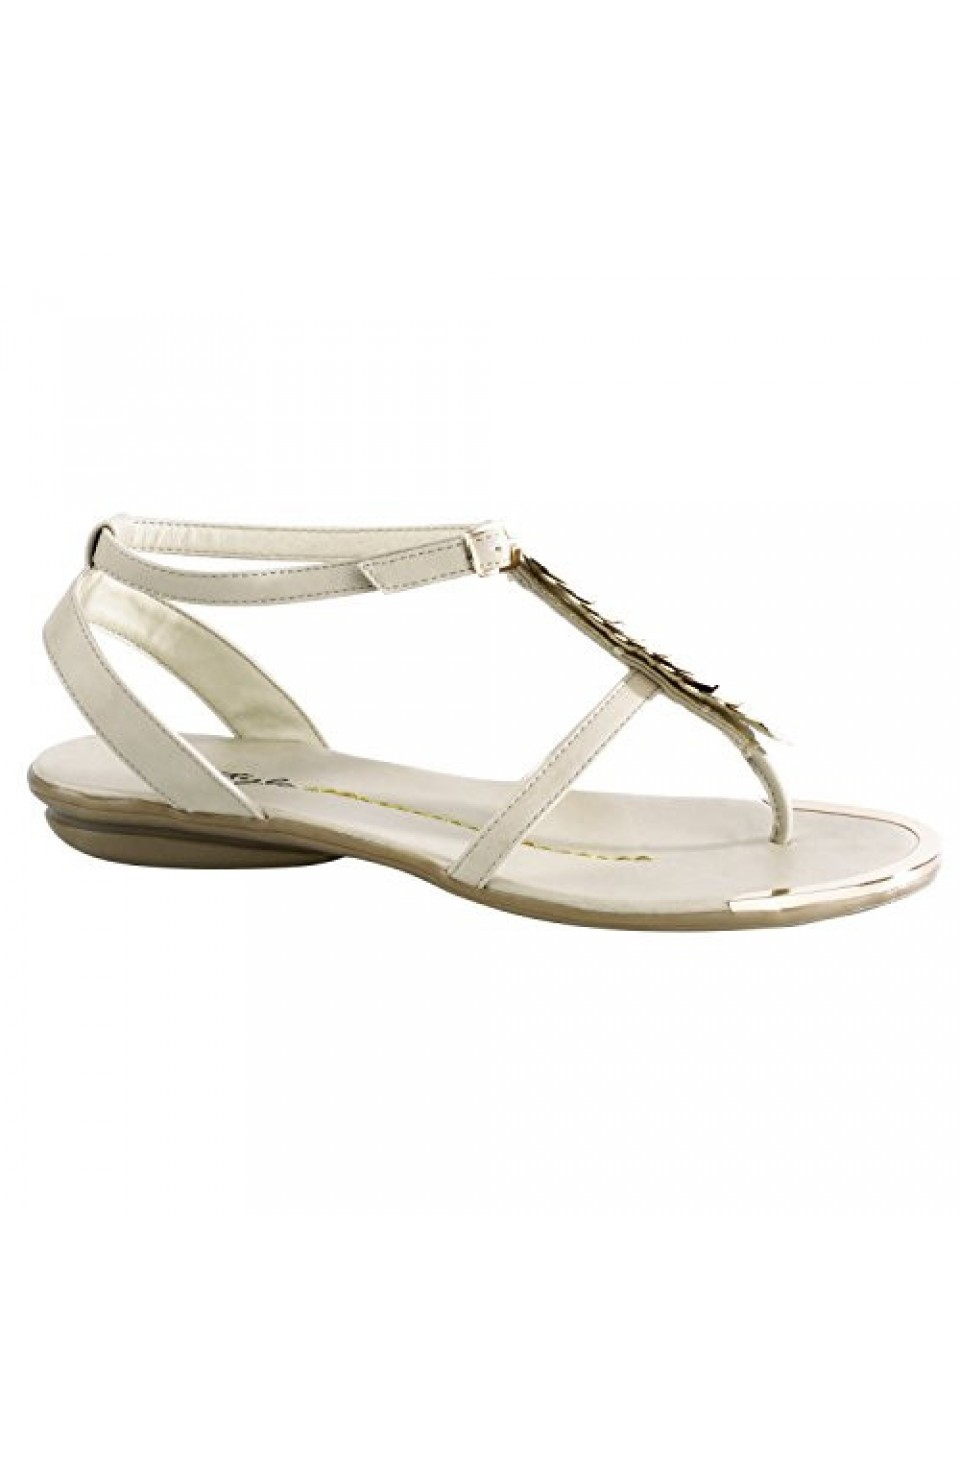 Women's Beige Bazooka Thong Sandal with Gold Toned T-Strap